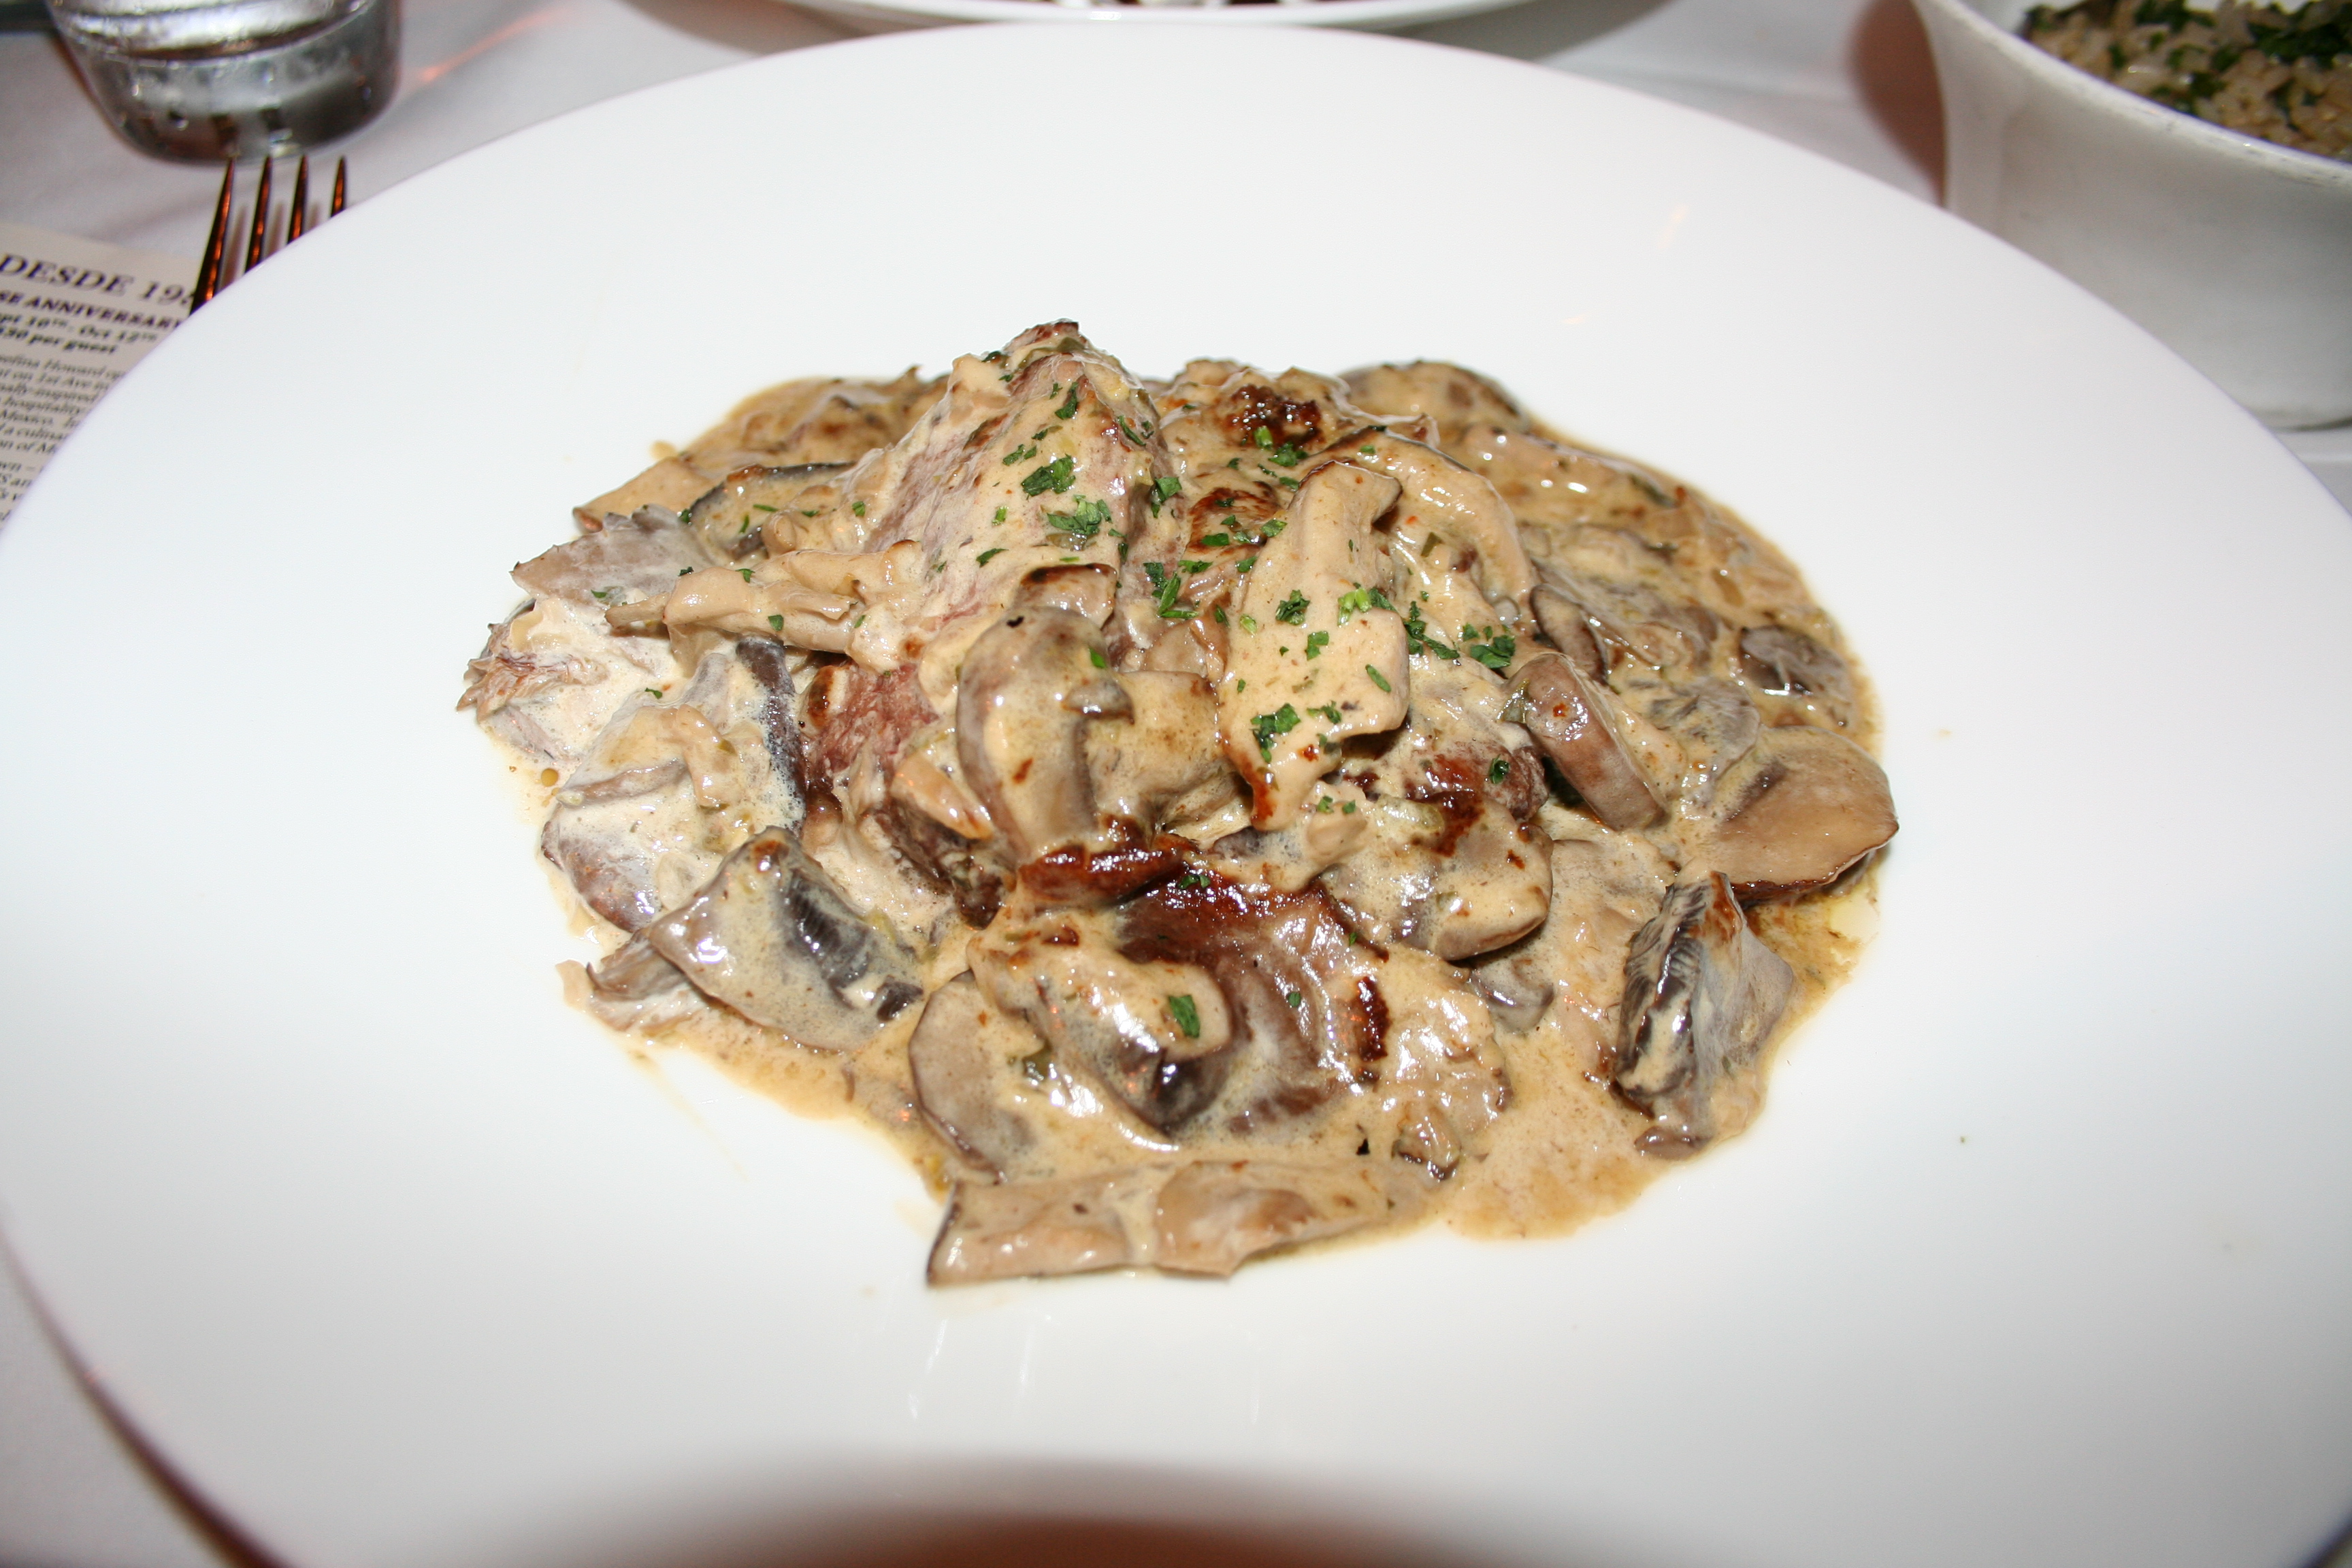 Filet mignon covered with wild mushroom tequila cream sauce. (Photo: Mark Heckathorn/DC on Heels)